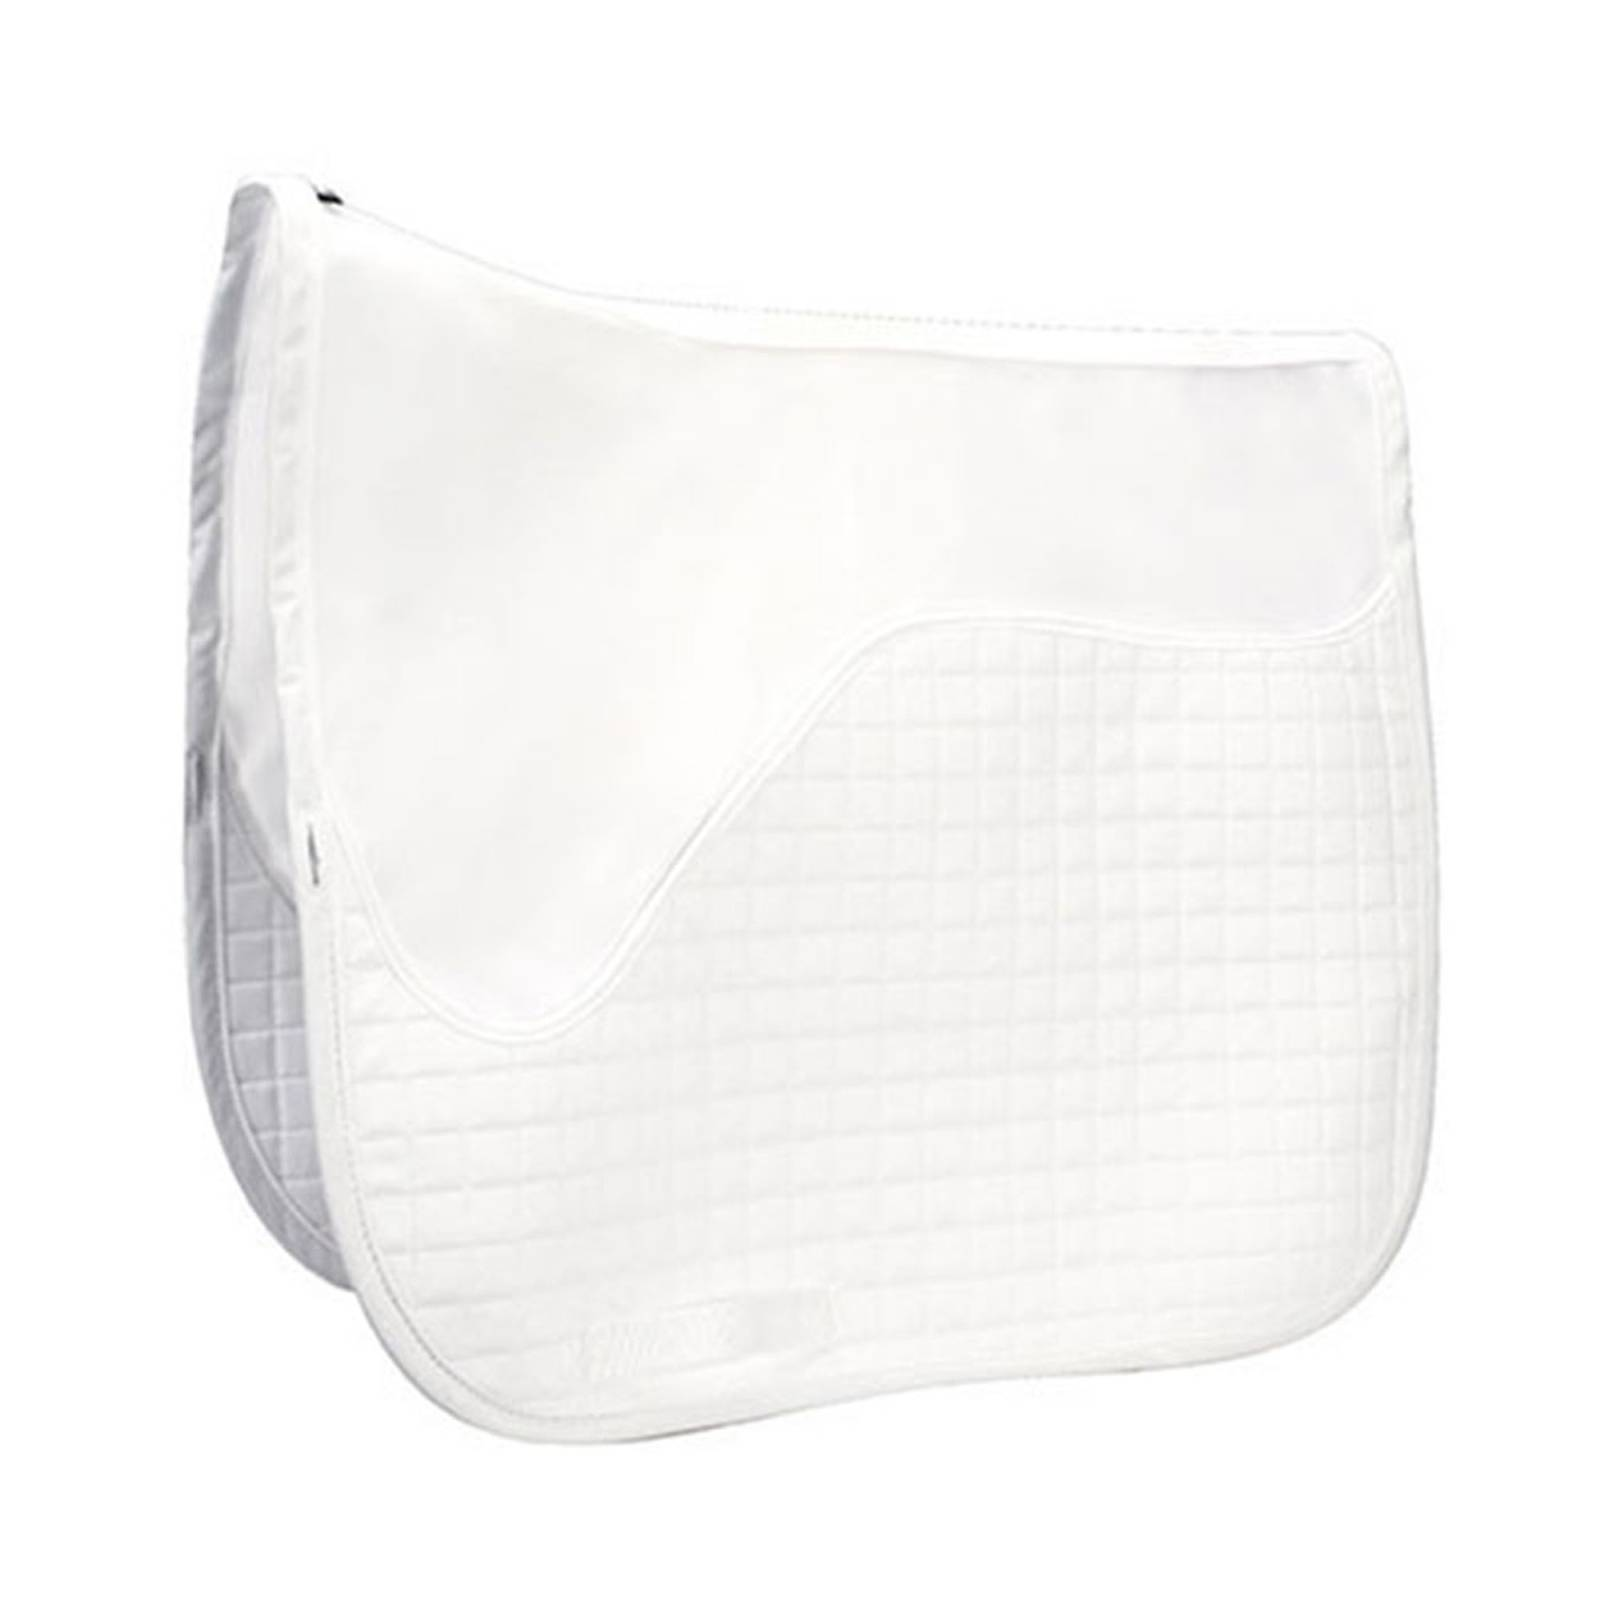 Outlet - Matrix Ergonomic Dressage Half Pad Schooling Liner, Medium, White